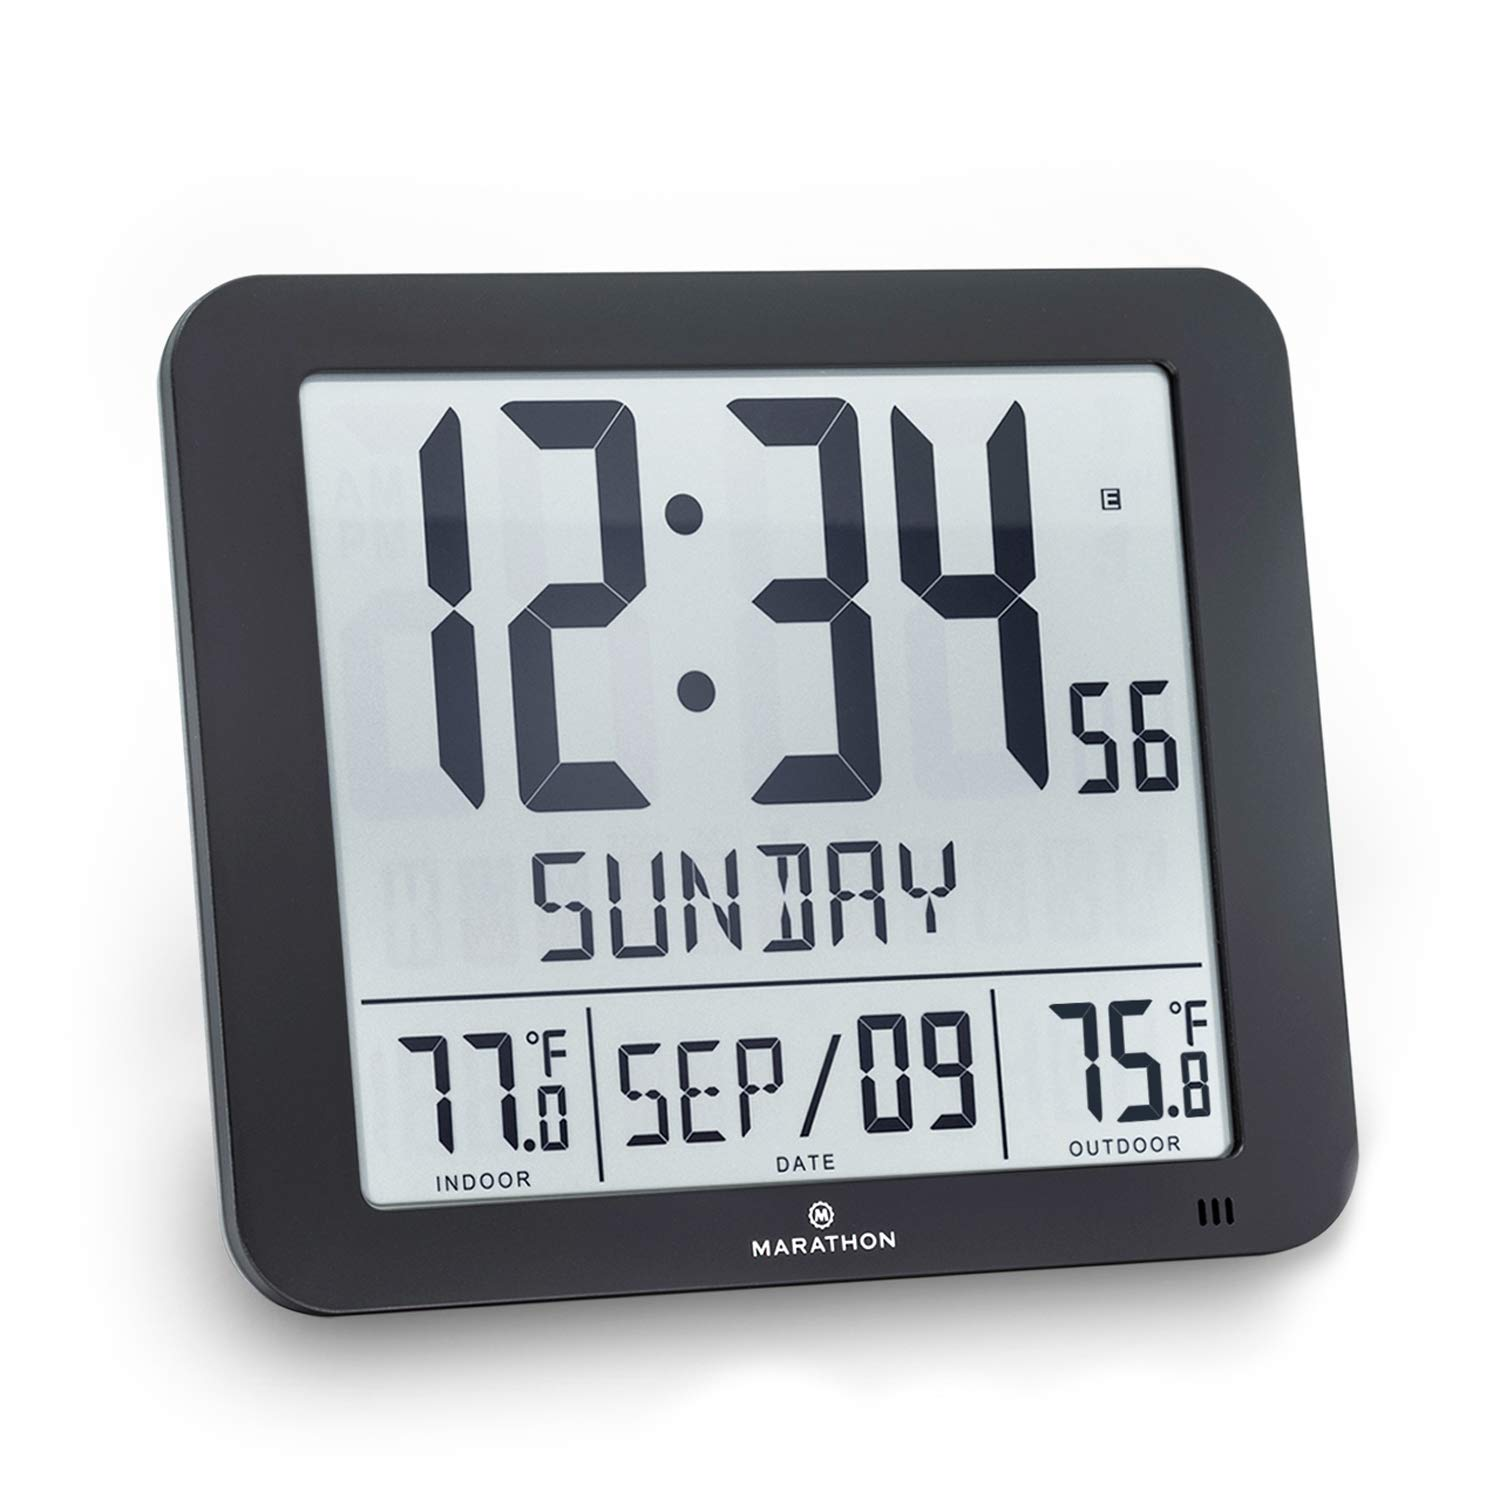 Marathon CL030027-FD-BK Slim Atomic Wall Clock with Indoor/Outdoor Temperature, Full Calendar and Large Display (New Full Display) Color: Black.